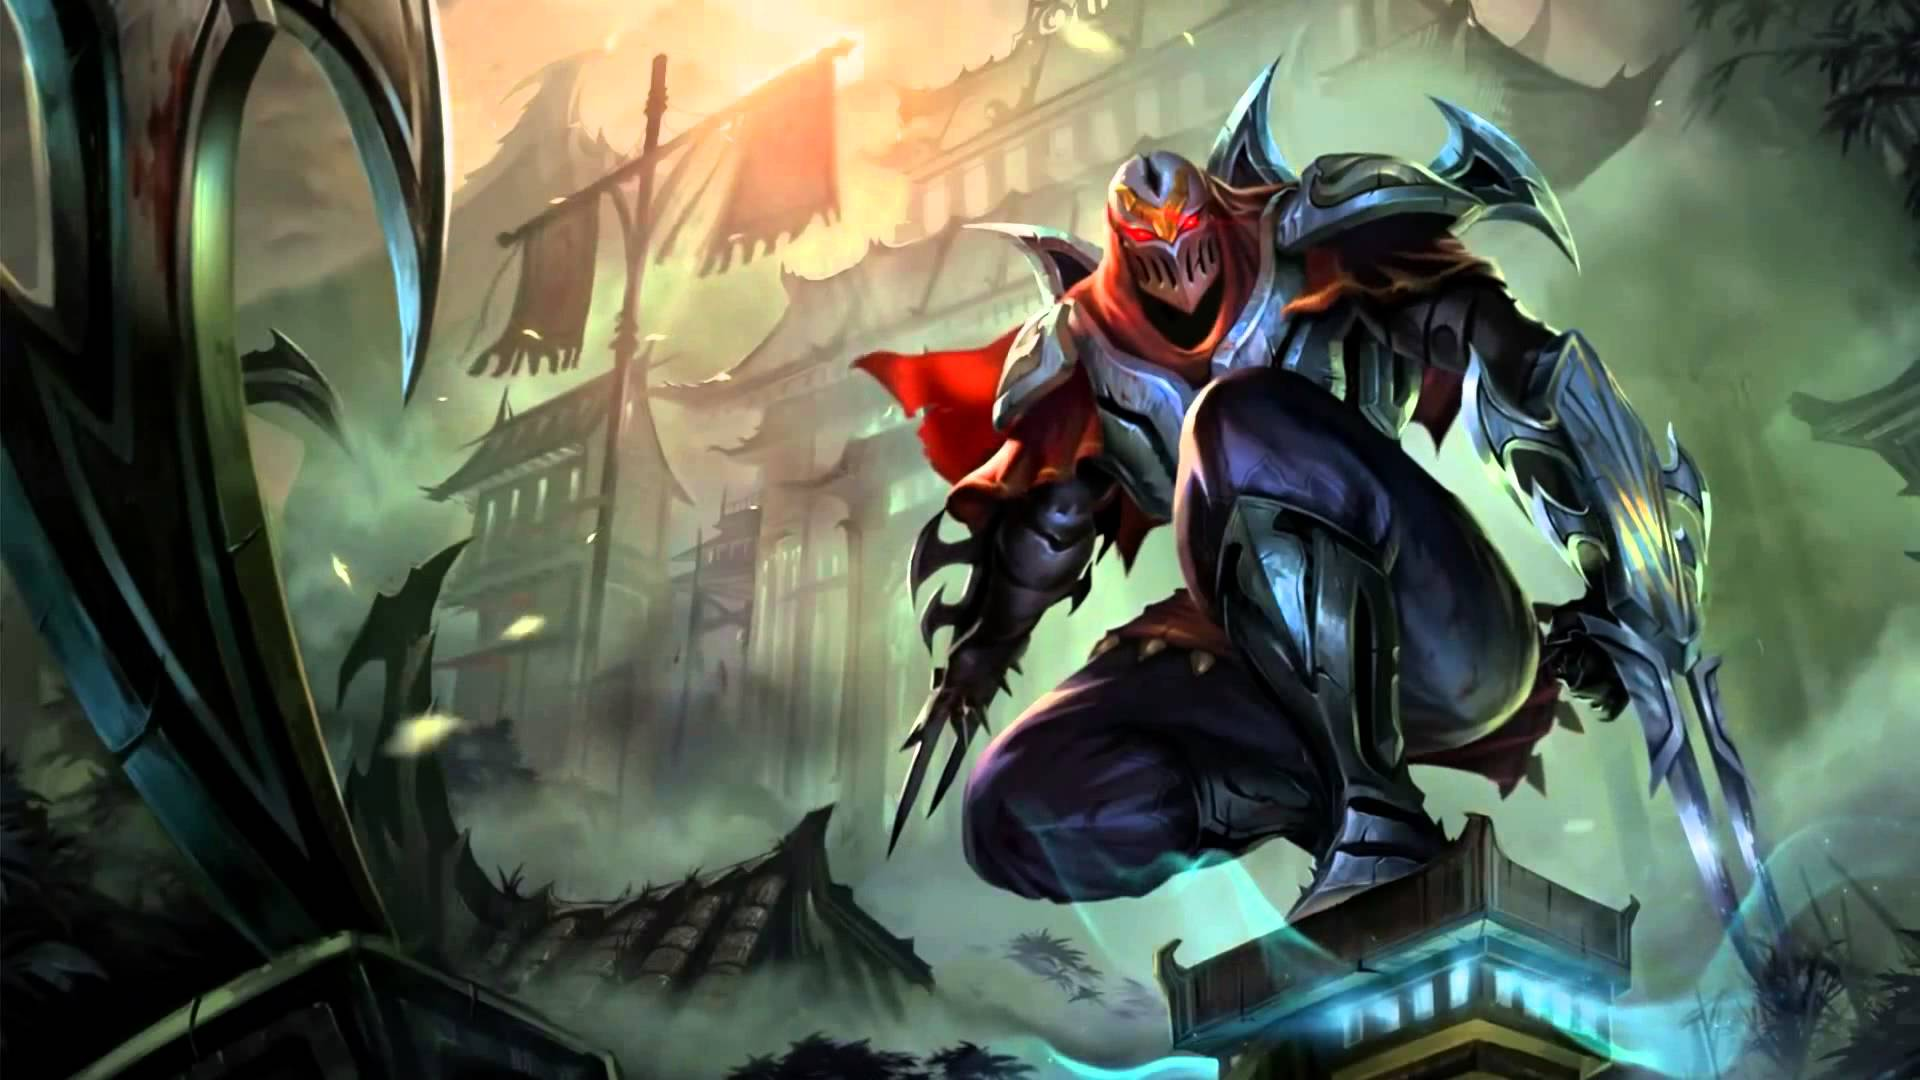 Inspirational League Of Legends Login themes Zed the Master for Shadows Hd - Zed The Master Of Shadows PNG